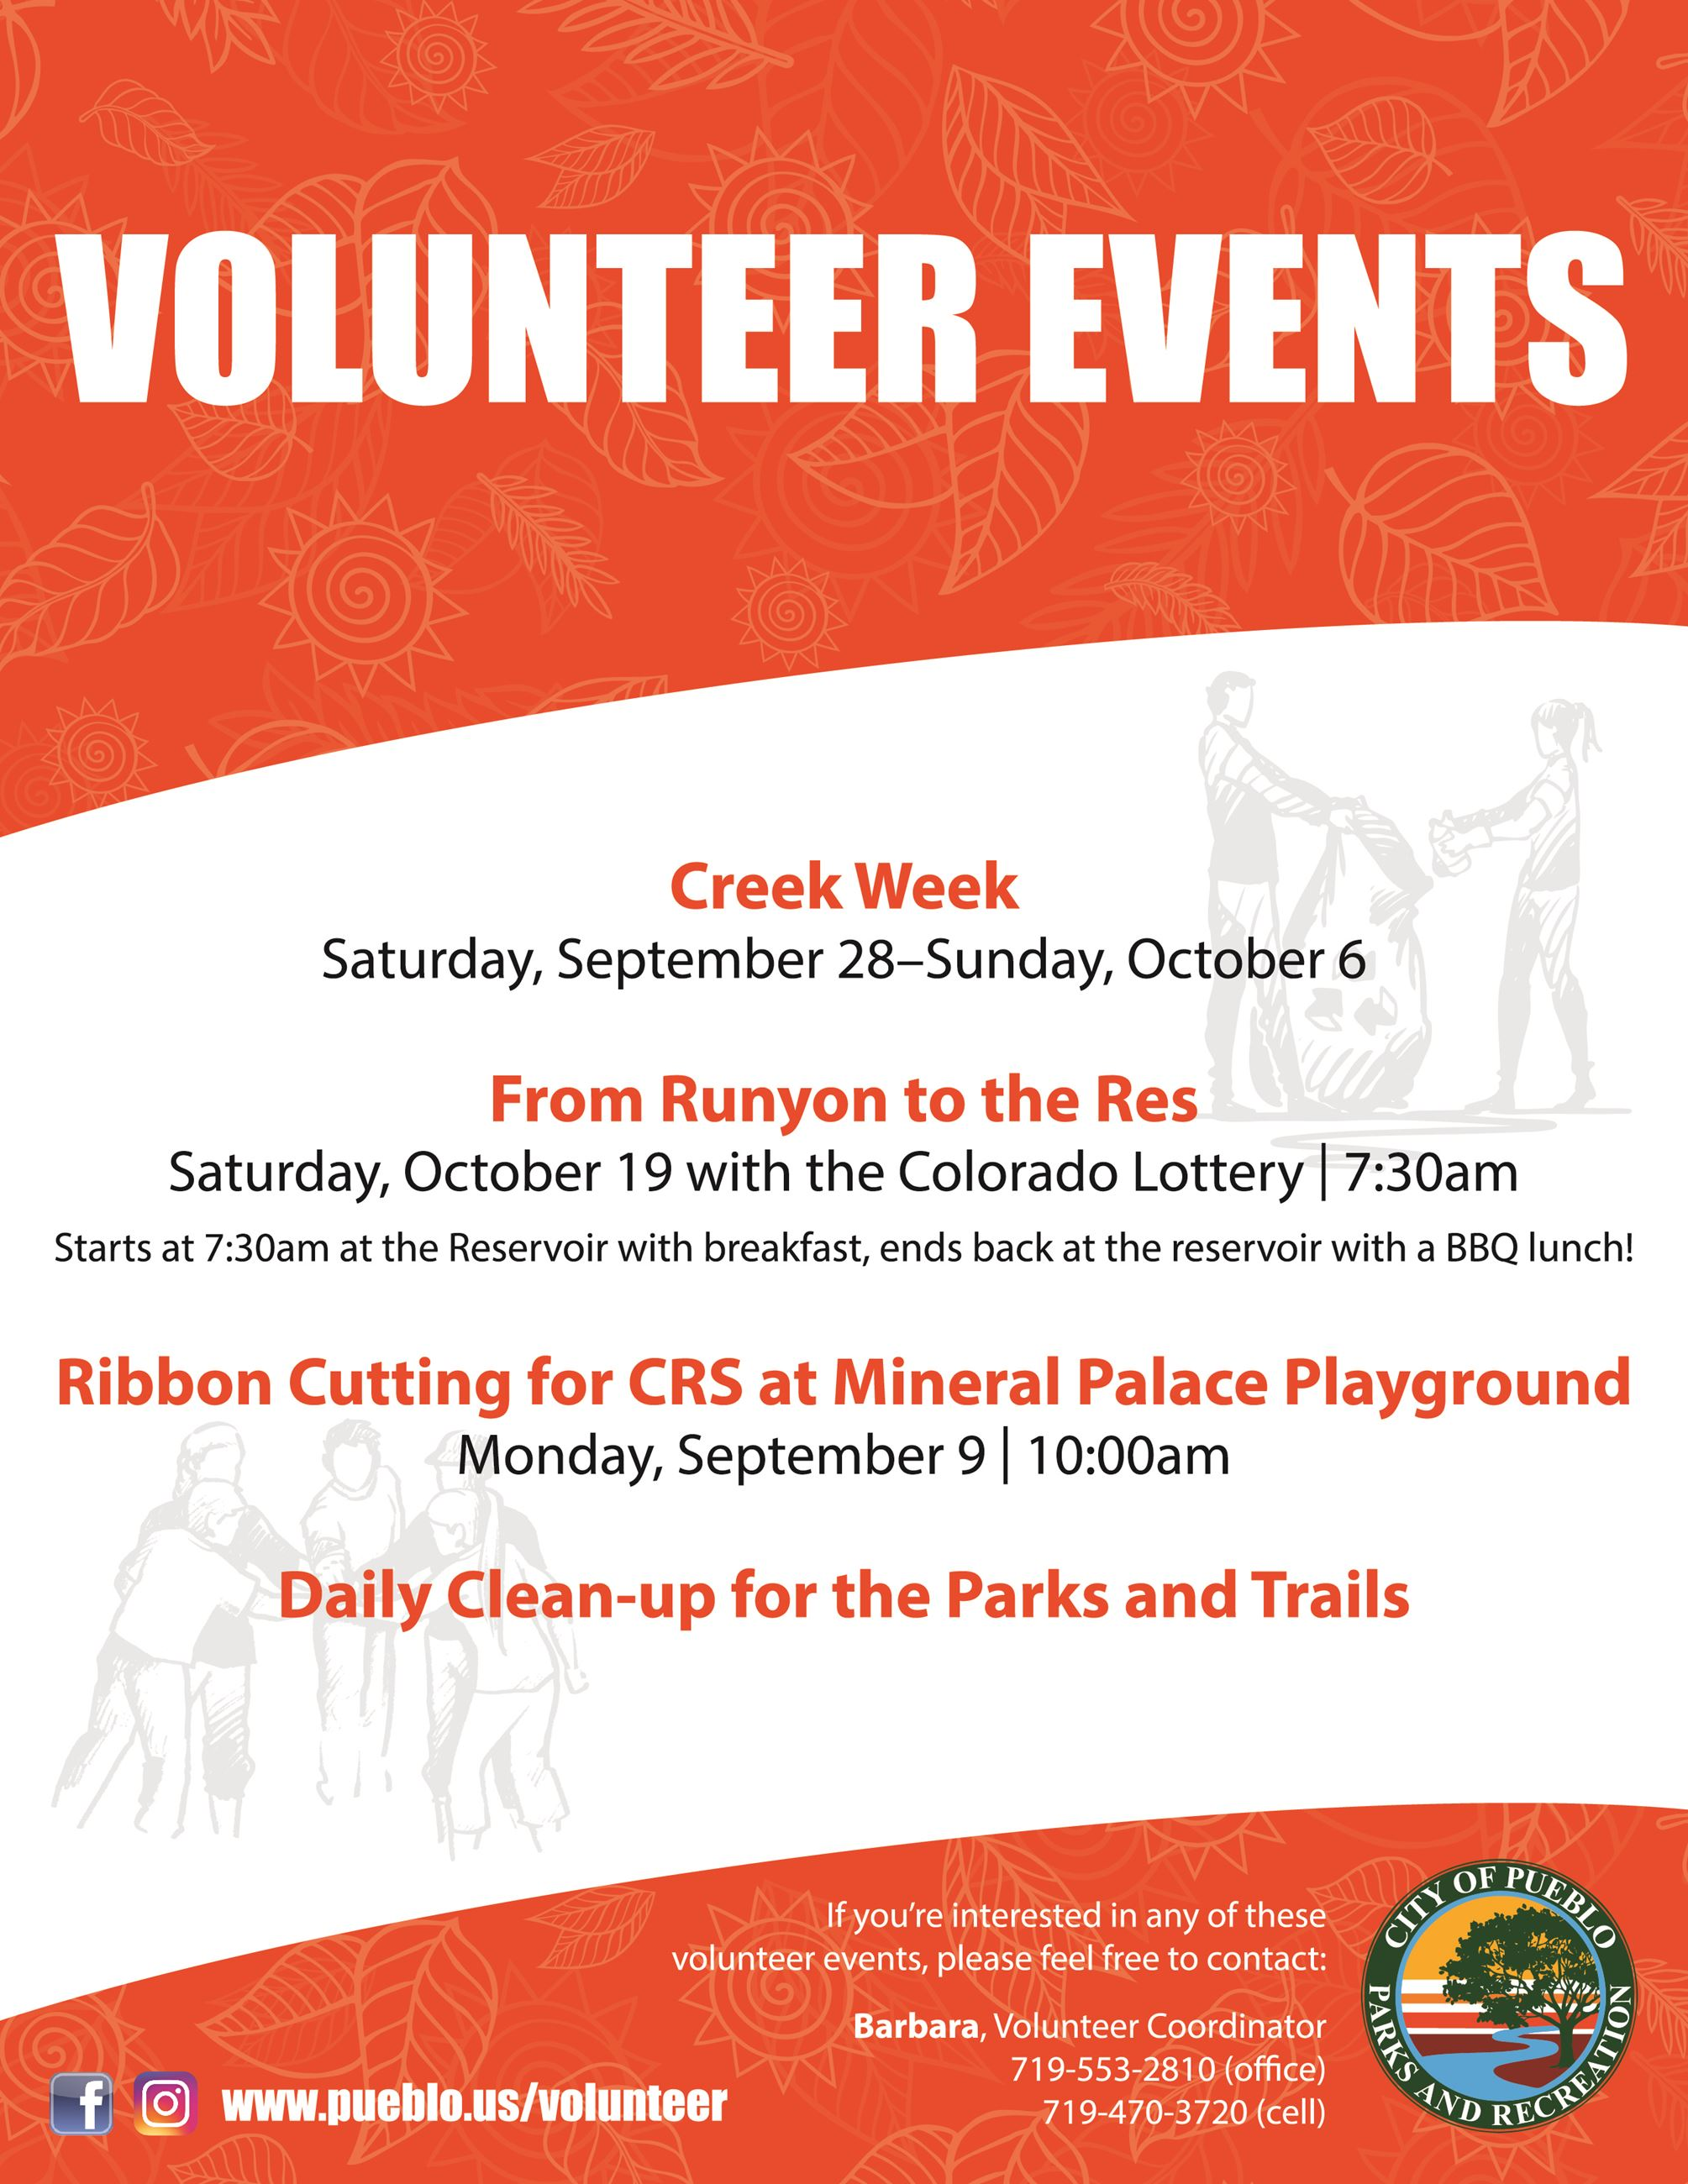 List of upcoming volunteer events